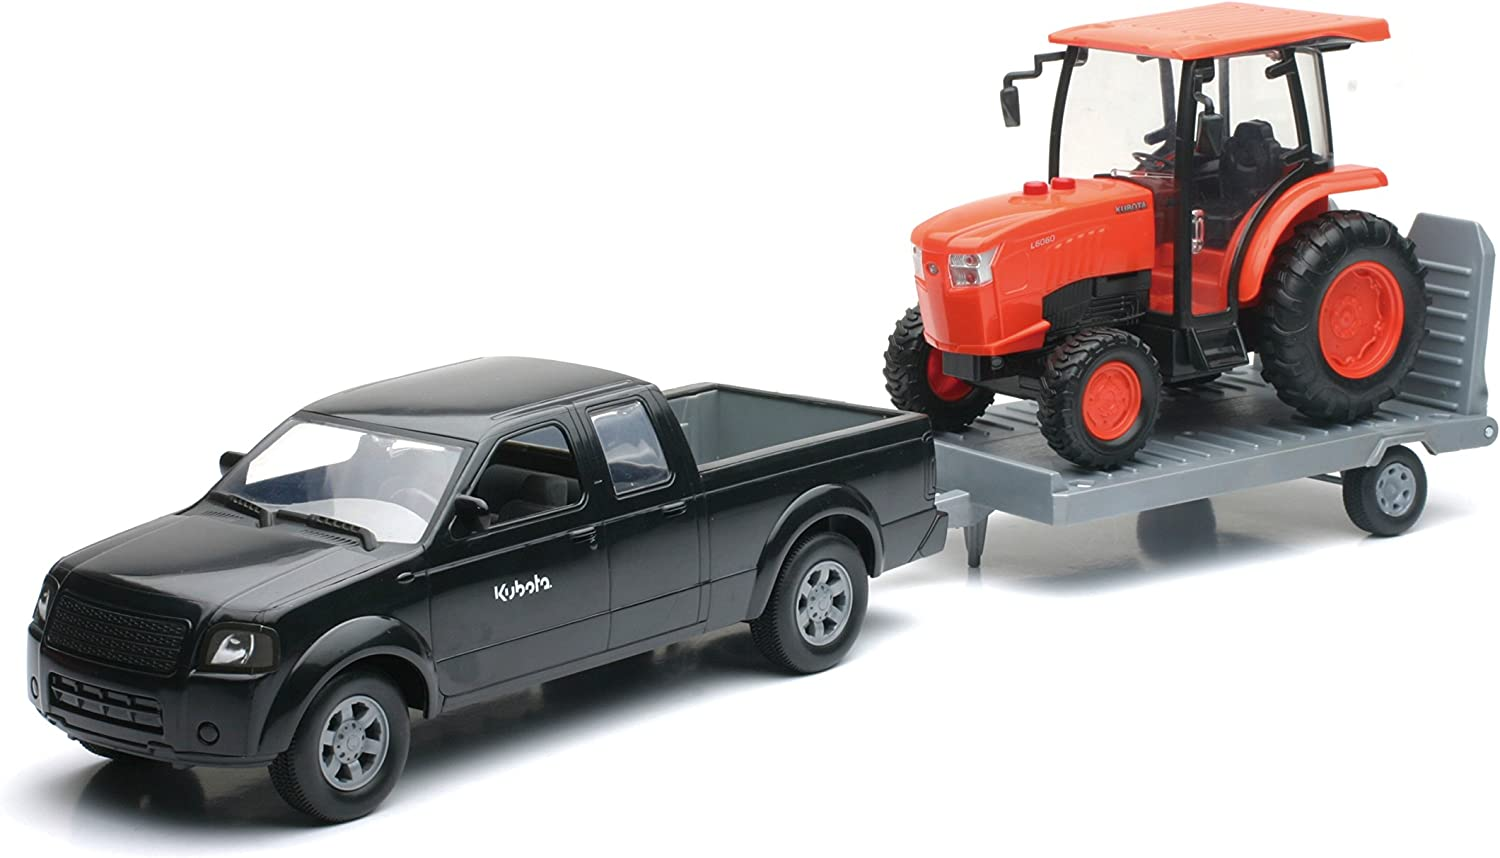 Newray Truck and Trailer With Kubota L6060 Farm Tractor 1//18 Scale Collectible Model Vehicle Set New Ray SG/_B00WKZUZVW/_US